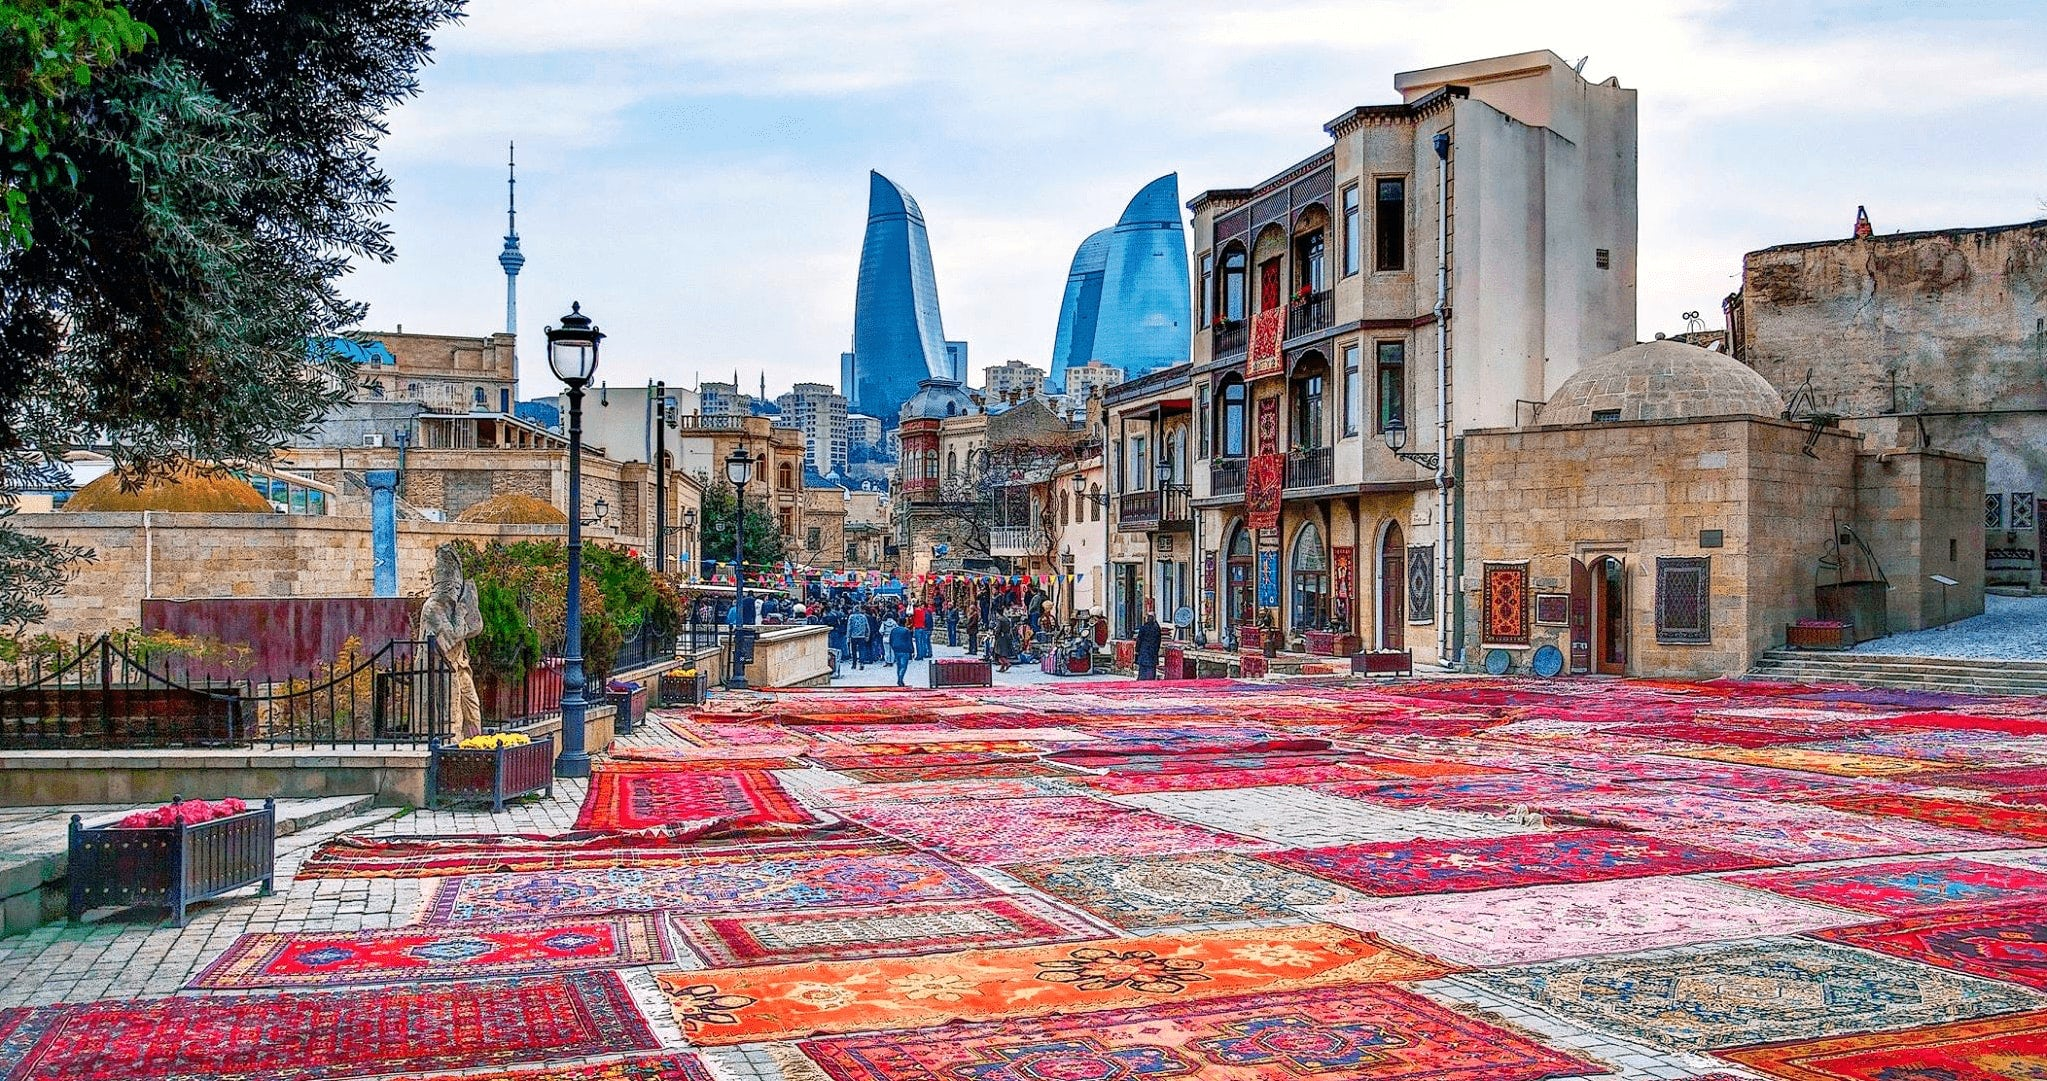 Icherisheher: the Capital of Baku